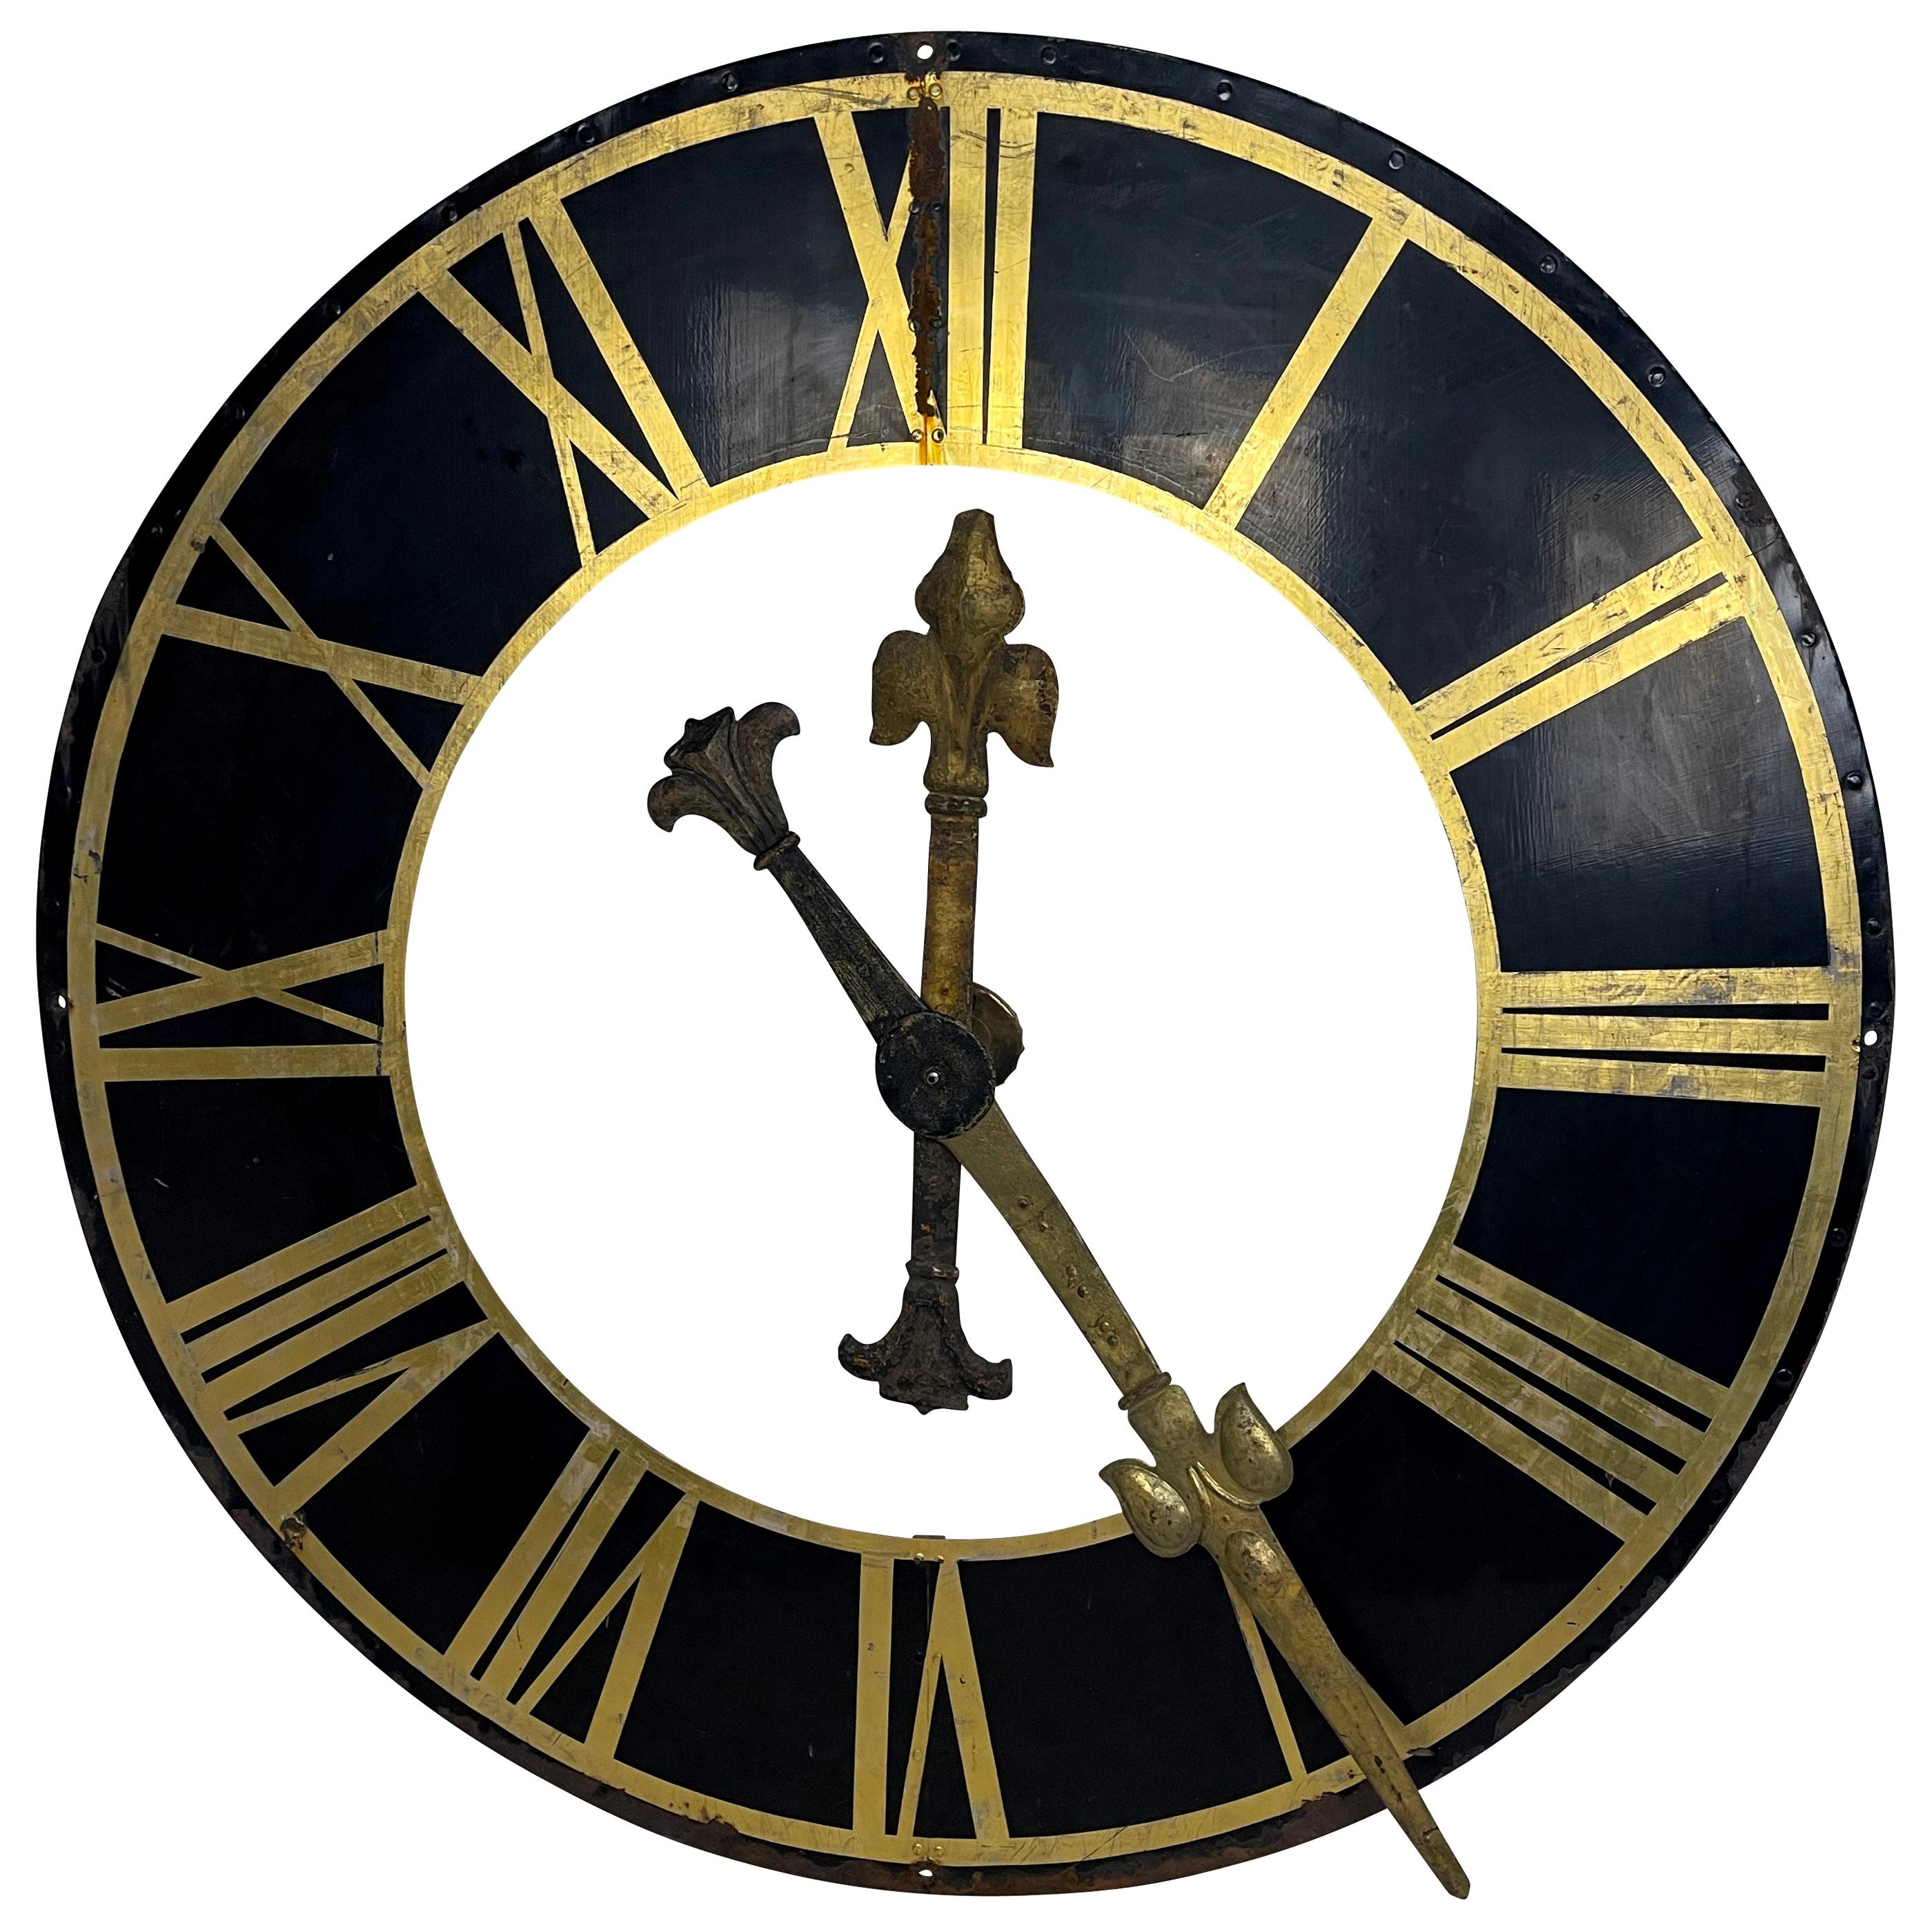 19th Century Black Church Clock Face with Gilt Roman Numerals and Hands